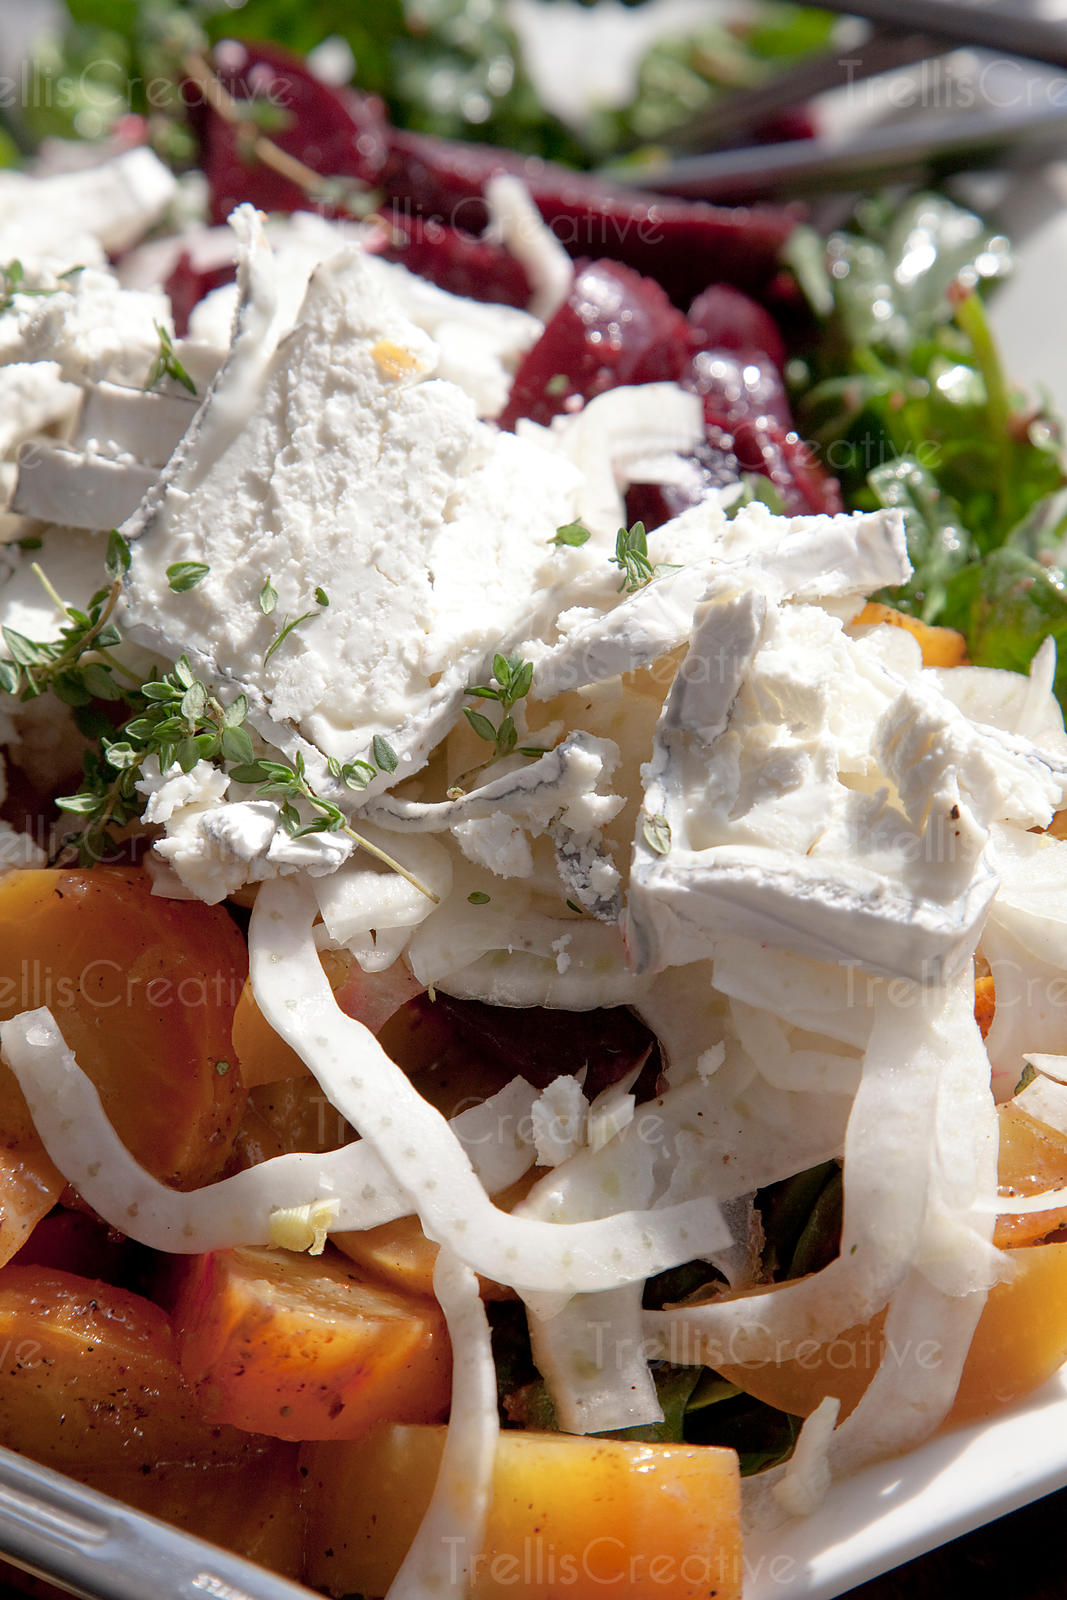 Golden and red beet salad with shaved fenel and crumbled goat cheese